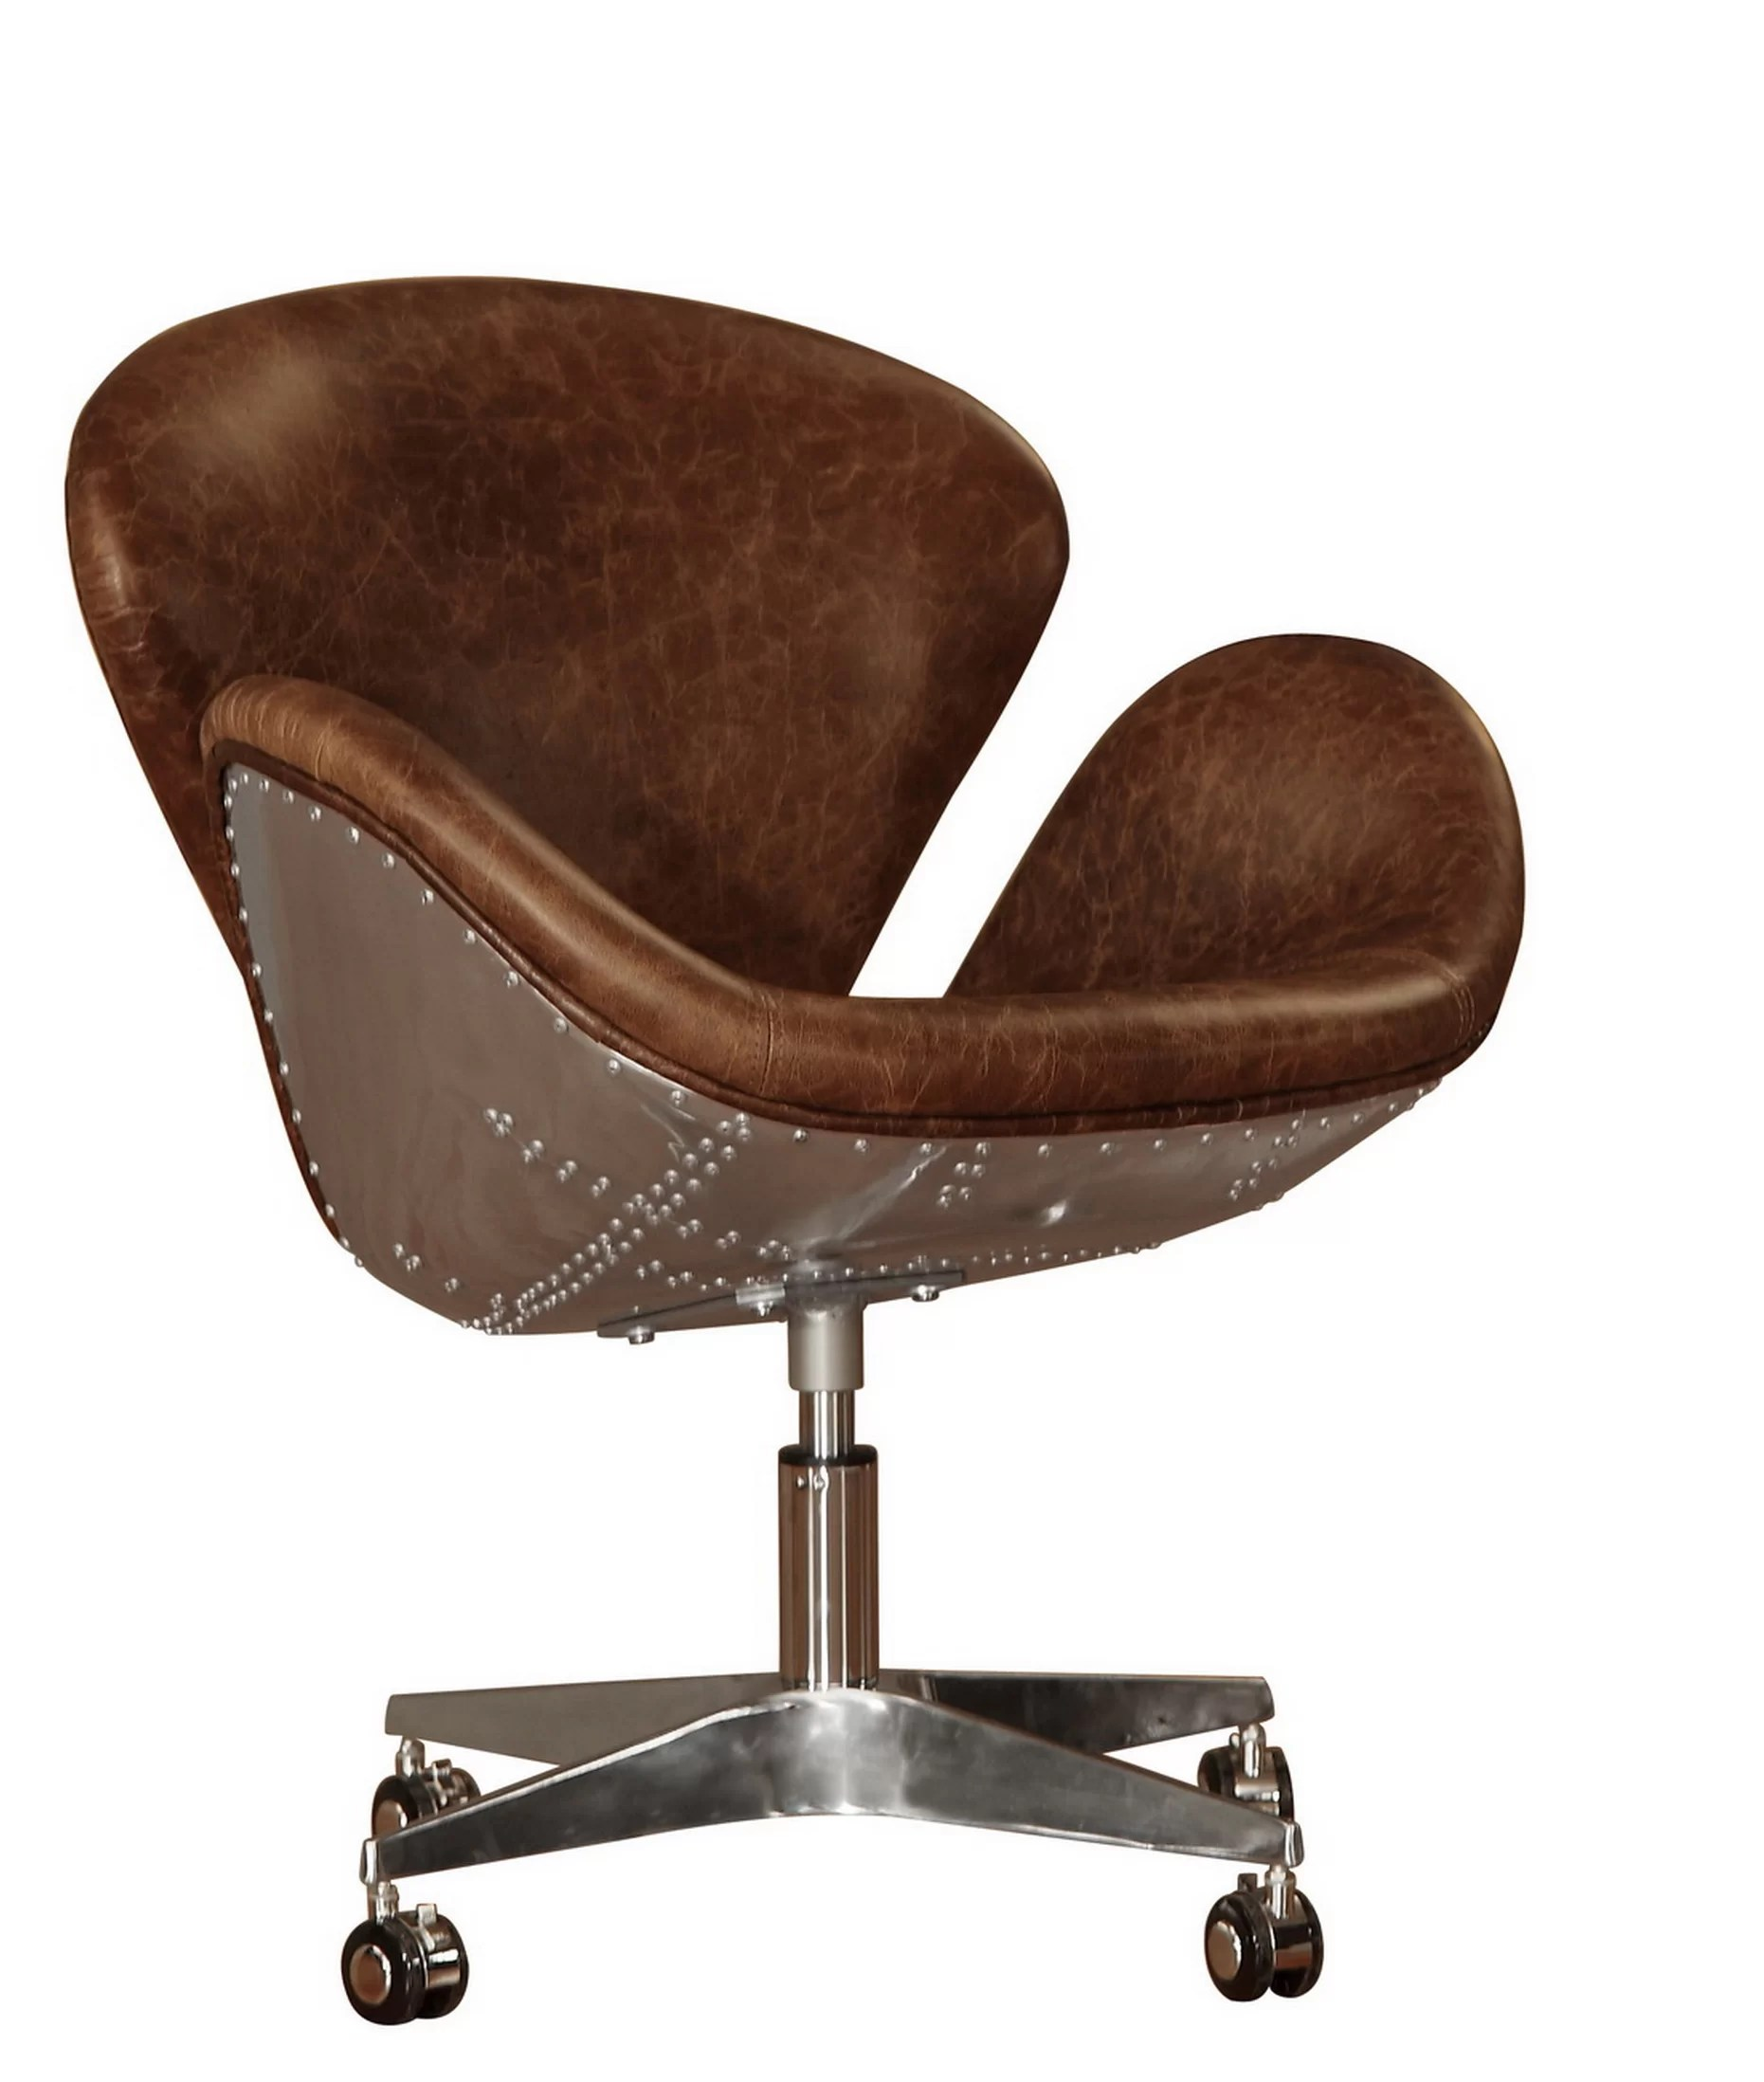 leather desk chairs hanging chair making lazzaro timeless bomber reviews wayfair